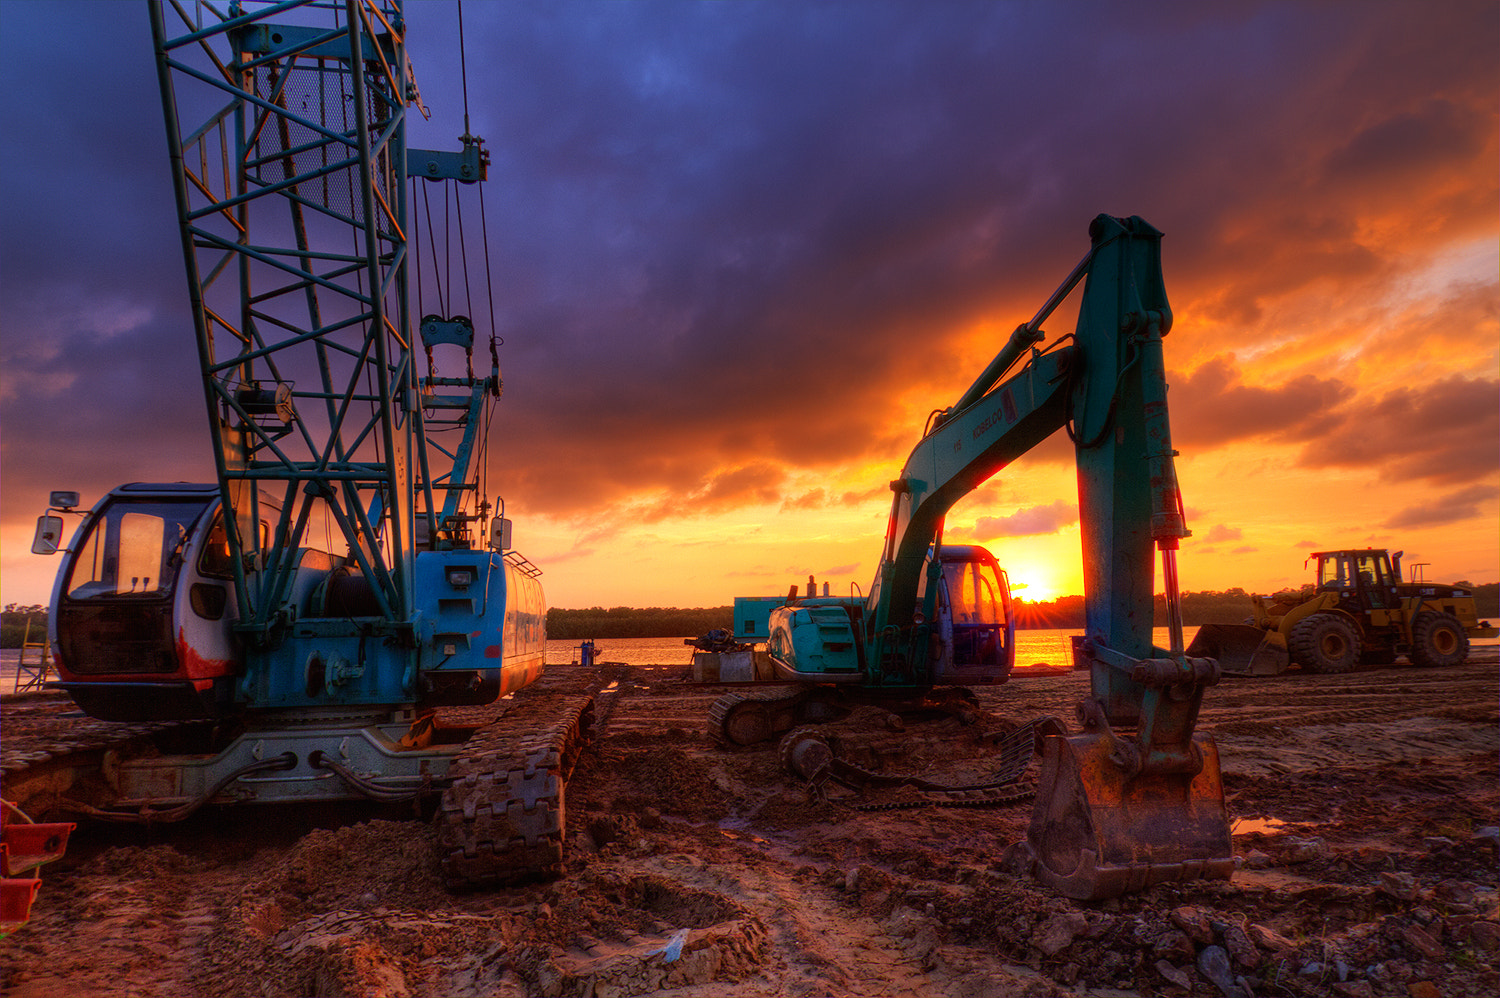 Photograph Sunset at site by  Jalearn on 500px